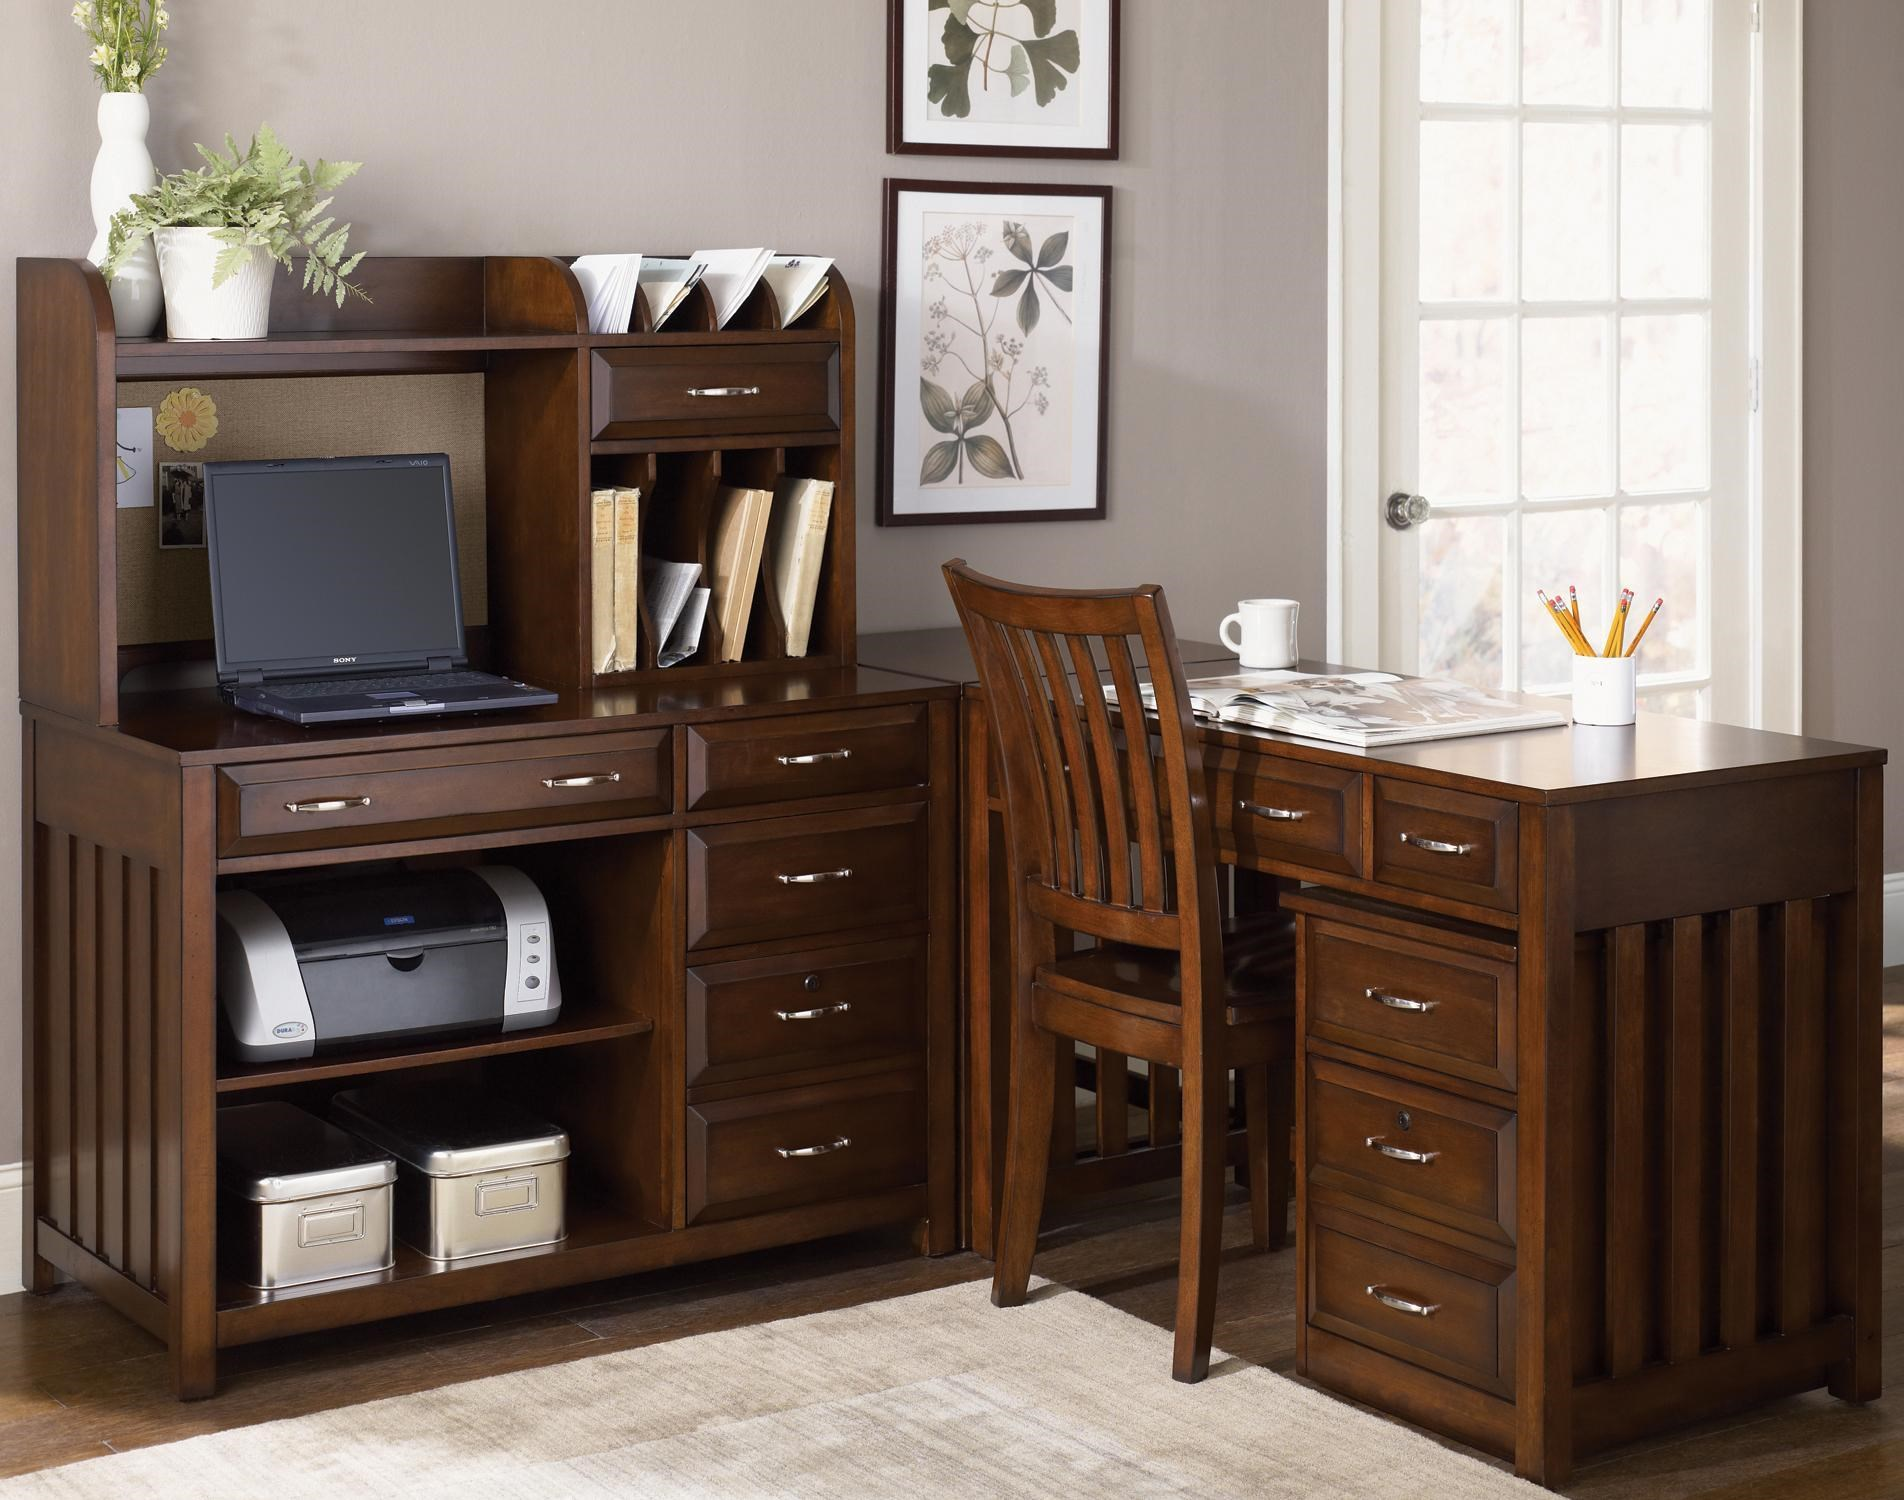 Hampton Bay 5 Piece L Shaped Desk And File Cabinet Unit By Liberty Furniture